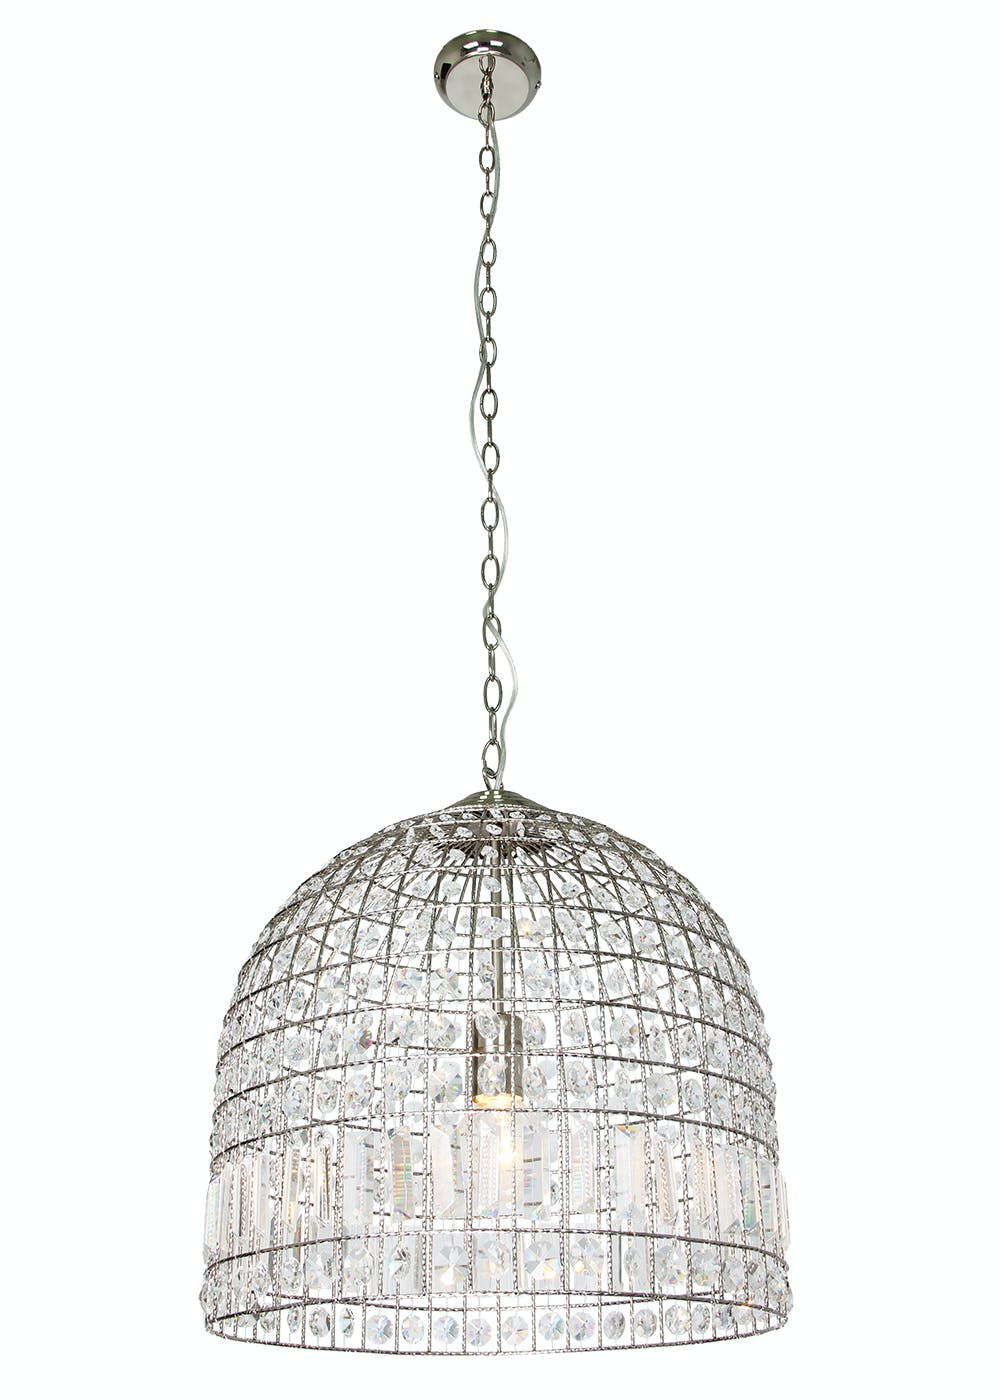 inch dome lighting products ch cp copper industville brooklyn png pewter pendant br